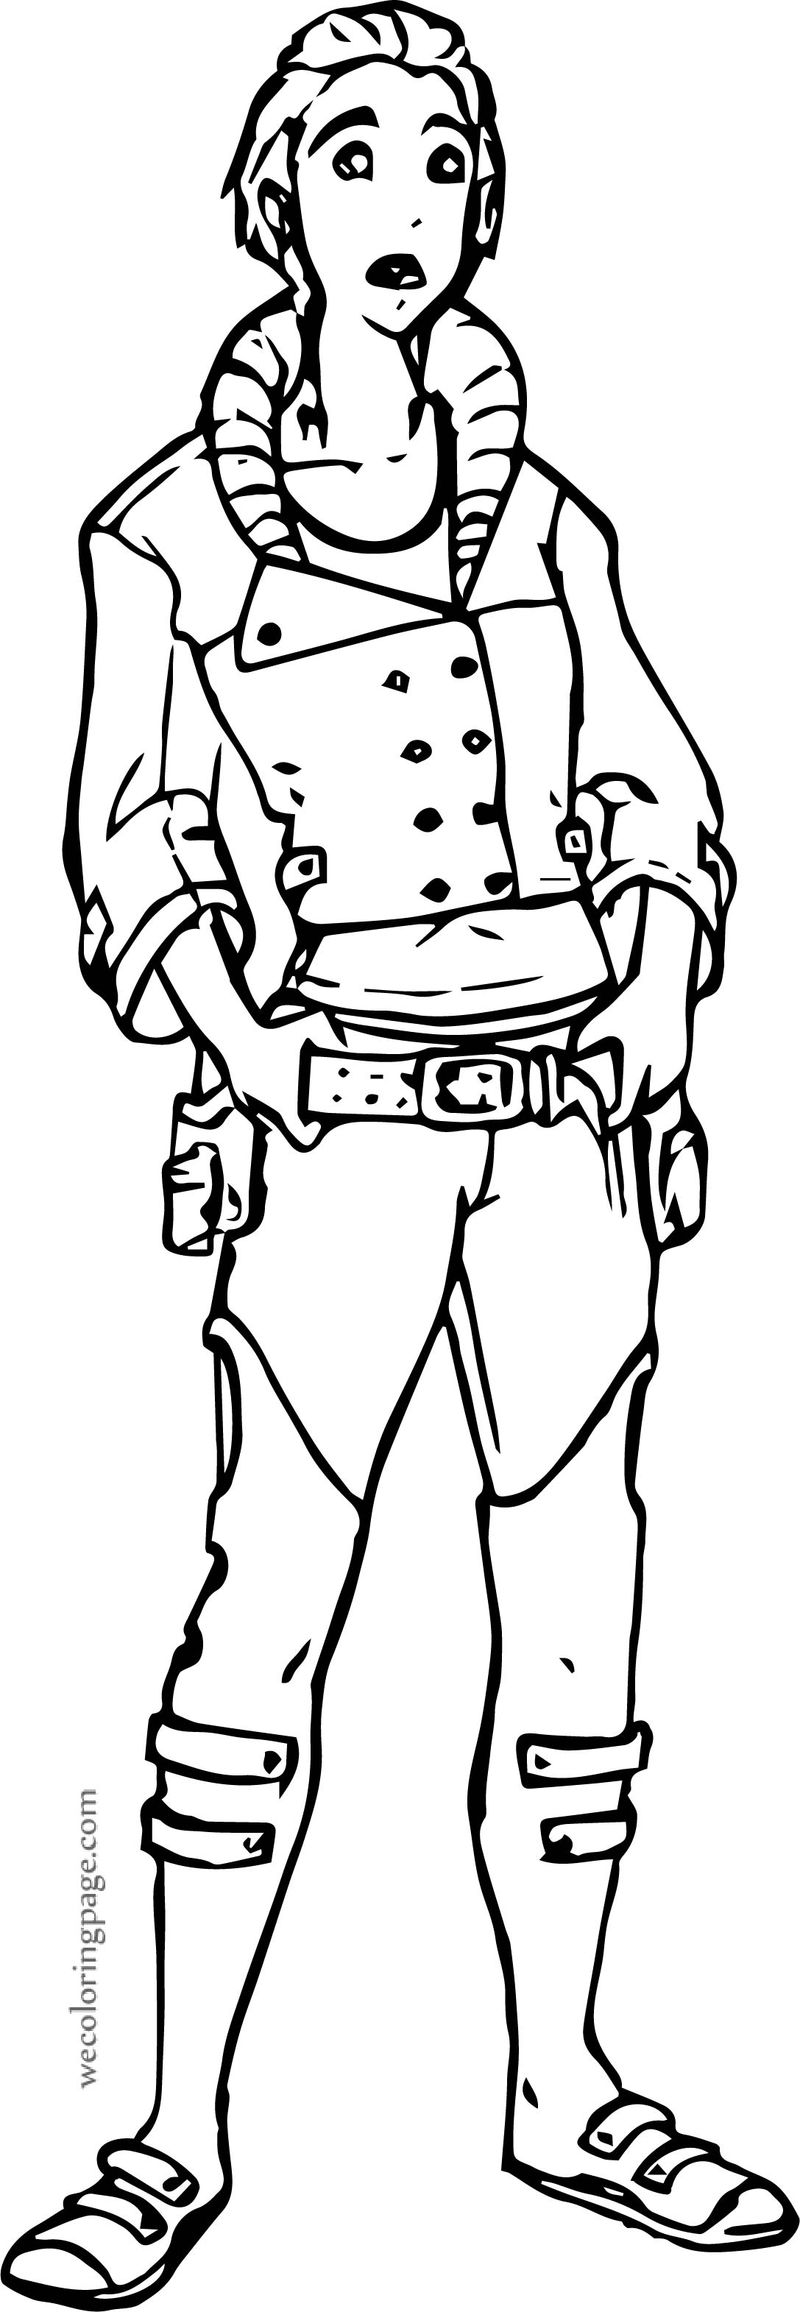 Characters Boy Coloring Page